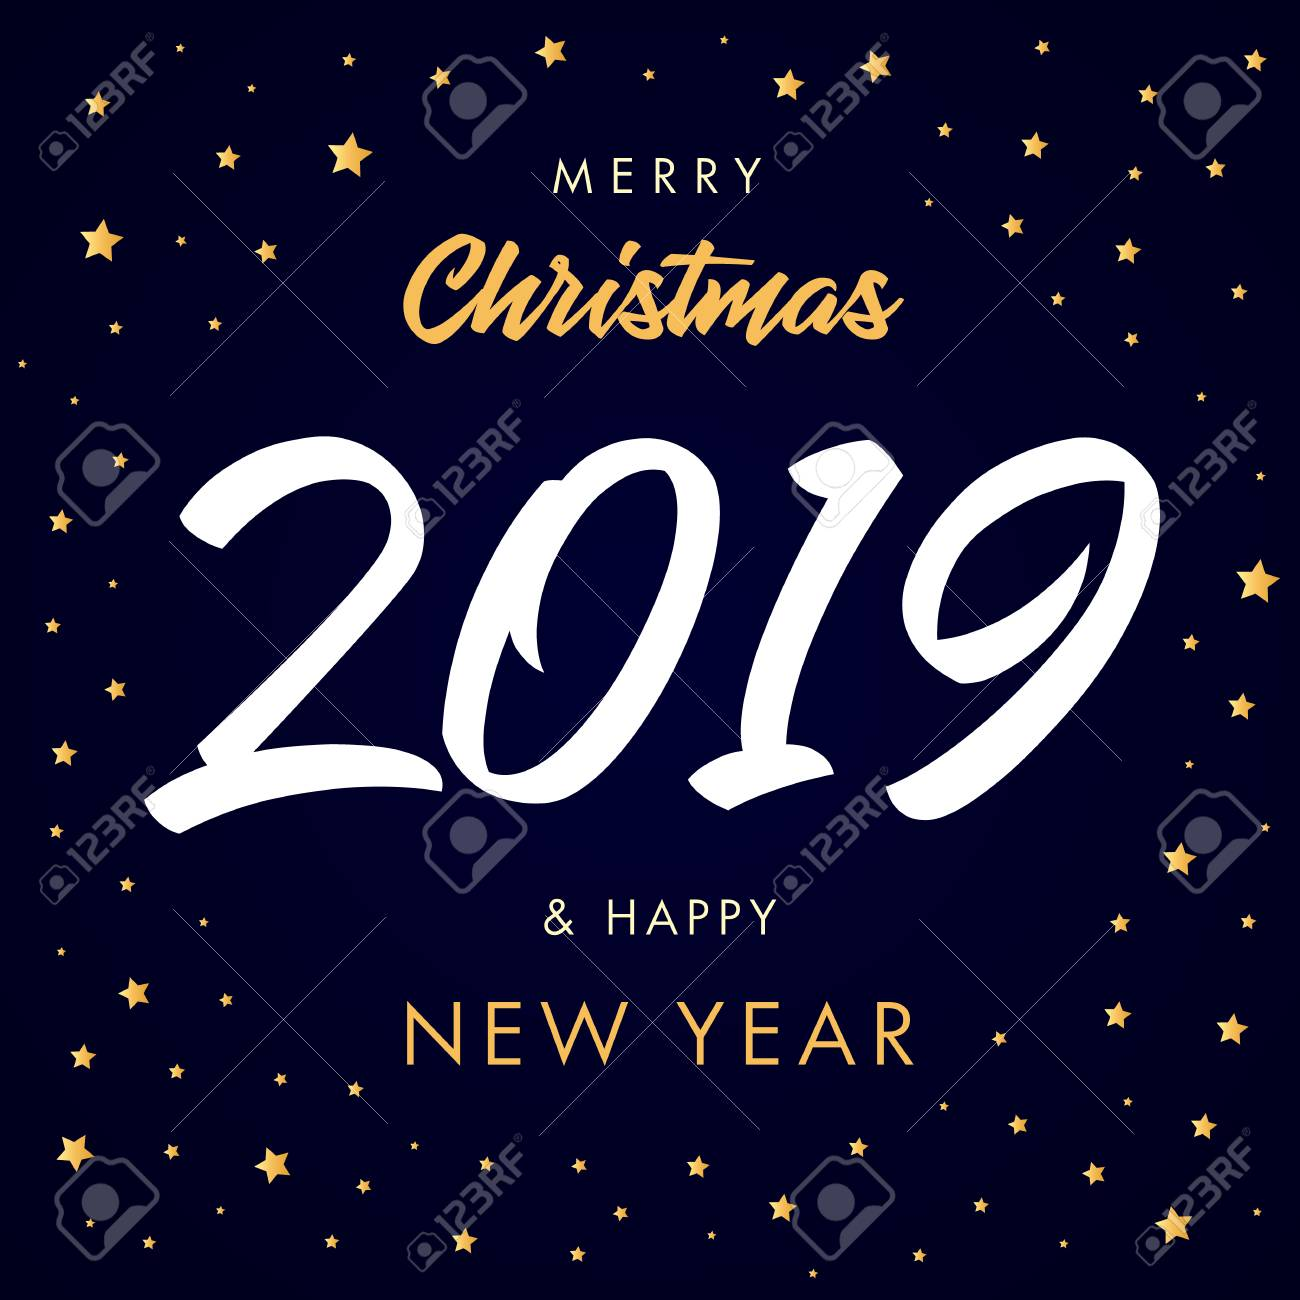 Christmas And New Year Greetings 2019 Merry Christmas Calligraphy 2019 And Happy New Year Greeting